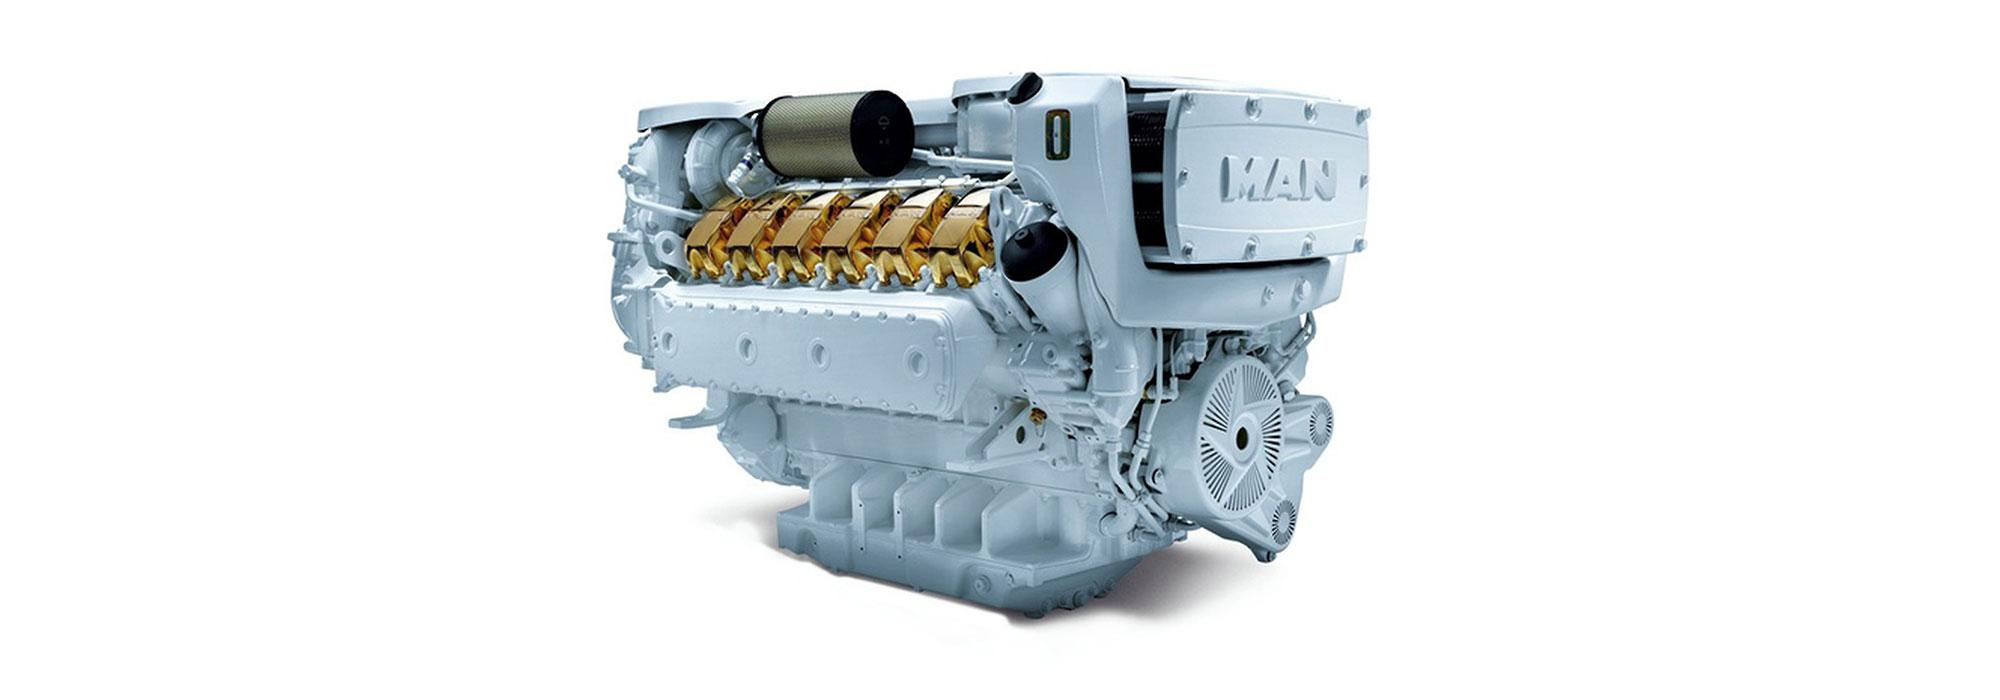 MAN engines yacht are well known for their compact dimensions and thus give architects and boat-builders a good deal of room for manoeuvre